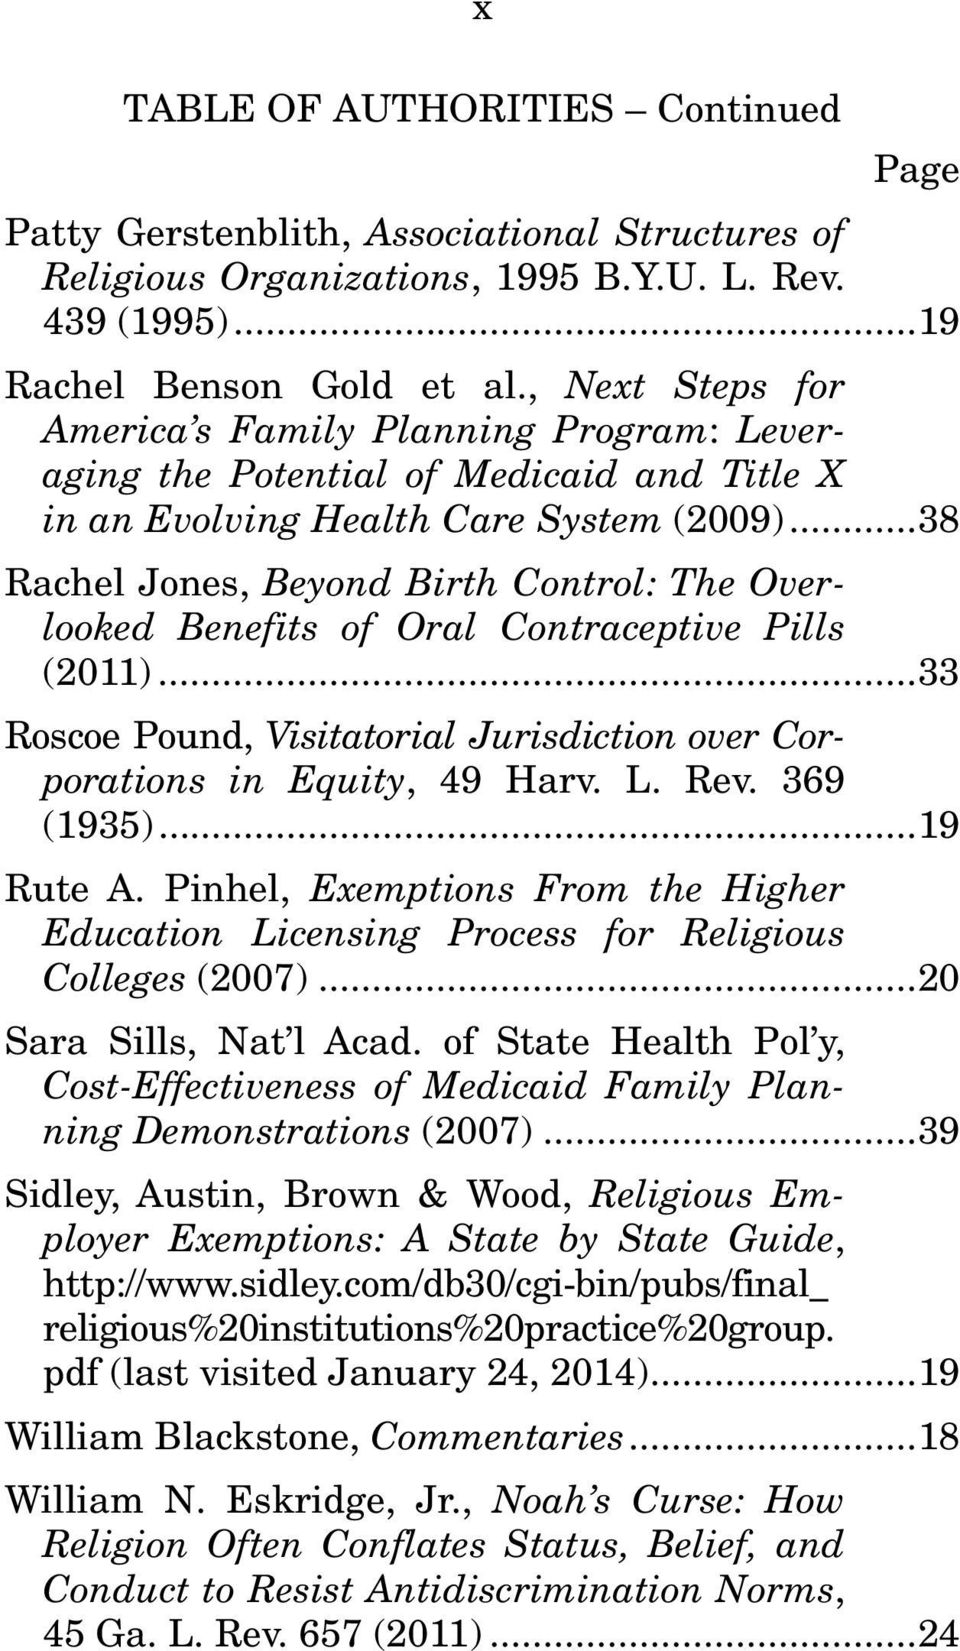 .. 38 Rachel Jones, Beyond Birth Control: The Overlooked Benefits of Oral Contraceptive Pills (2011)... 33 Roscoe Pound, Visitatorial Jurisdiction over Corporations in Equity, 49 Harv. L. Rev.